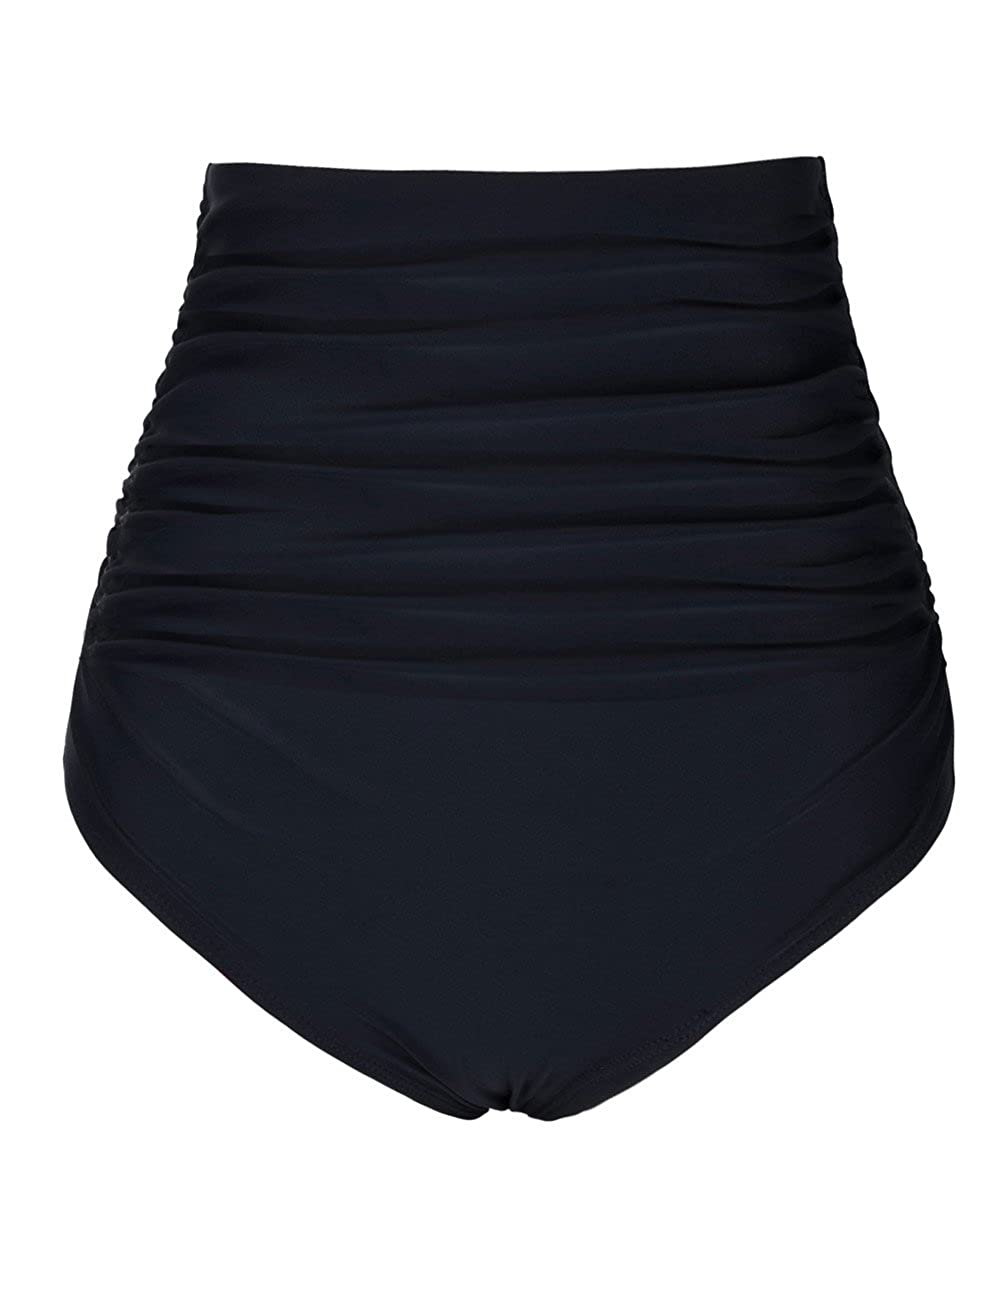 d726d9a144d Fully lined shorts and elastic waist. Full rear coverage. High waisted  offer moderate tummy control. Retro high-waisted bikini bottom flaunts a  flattering ...